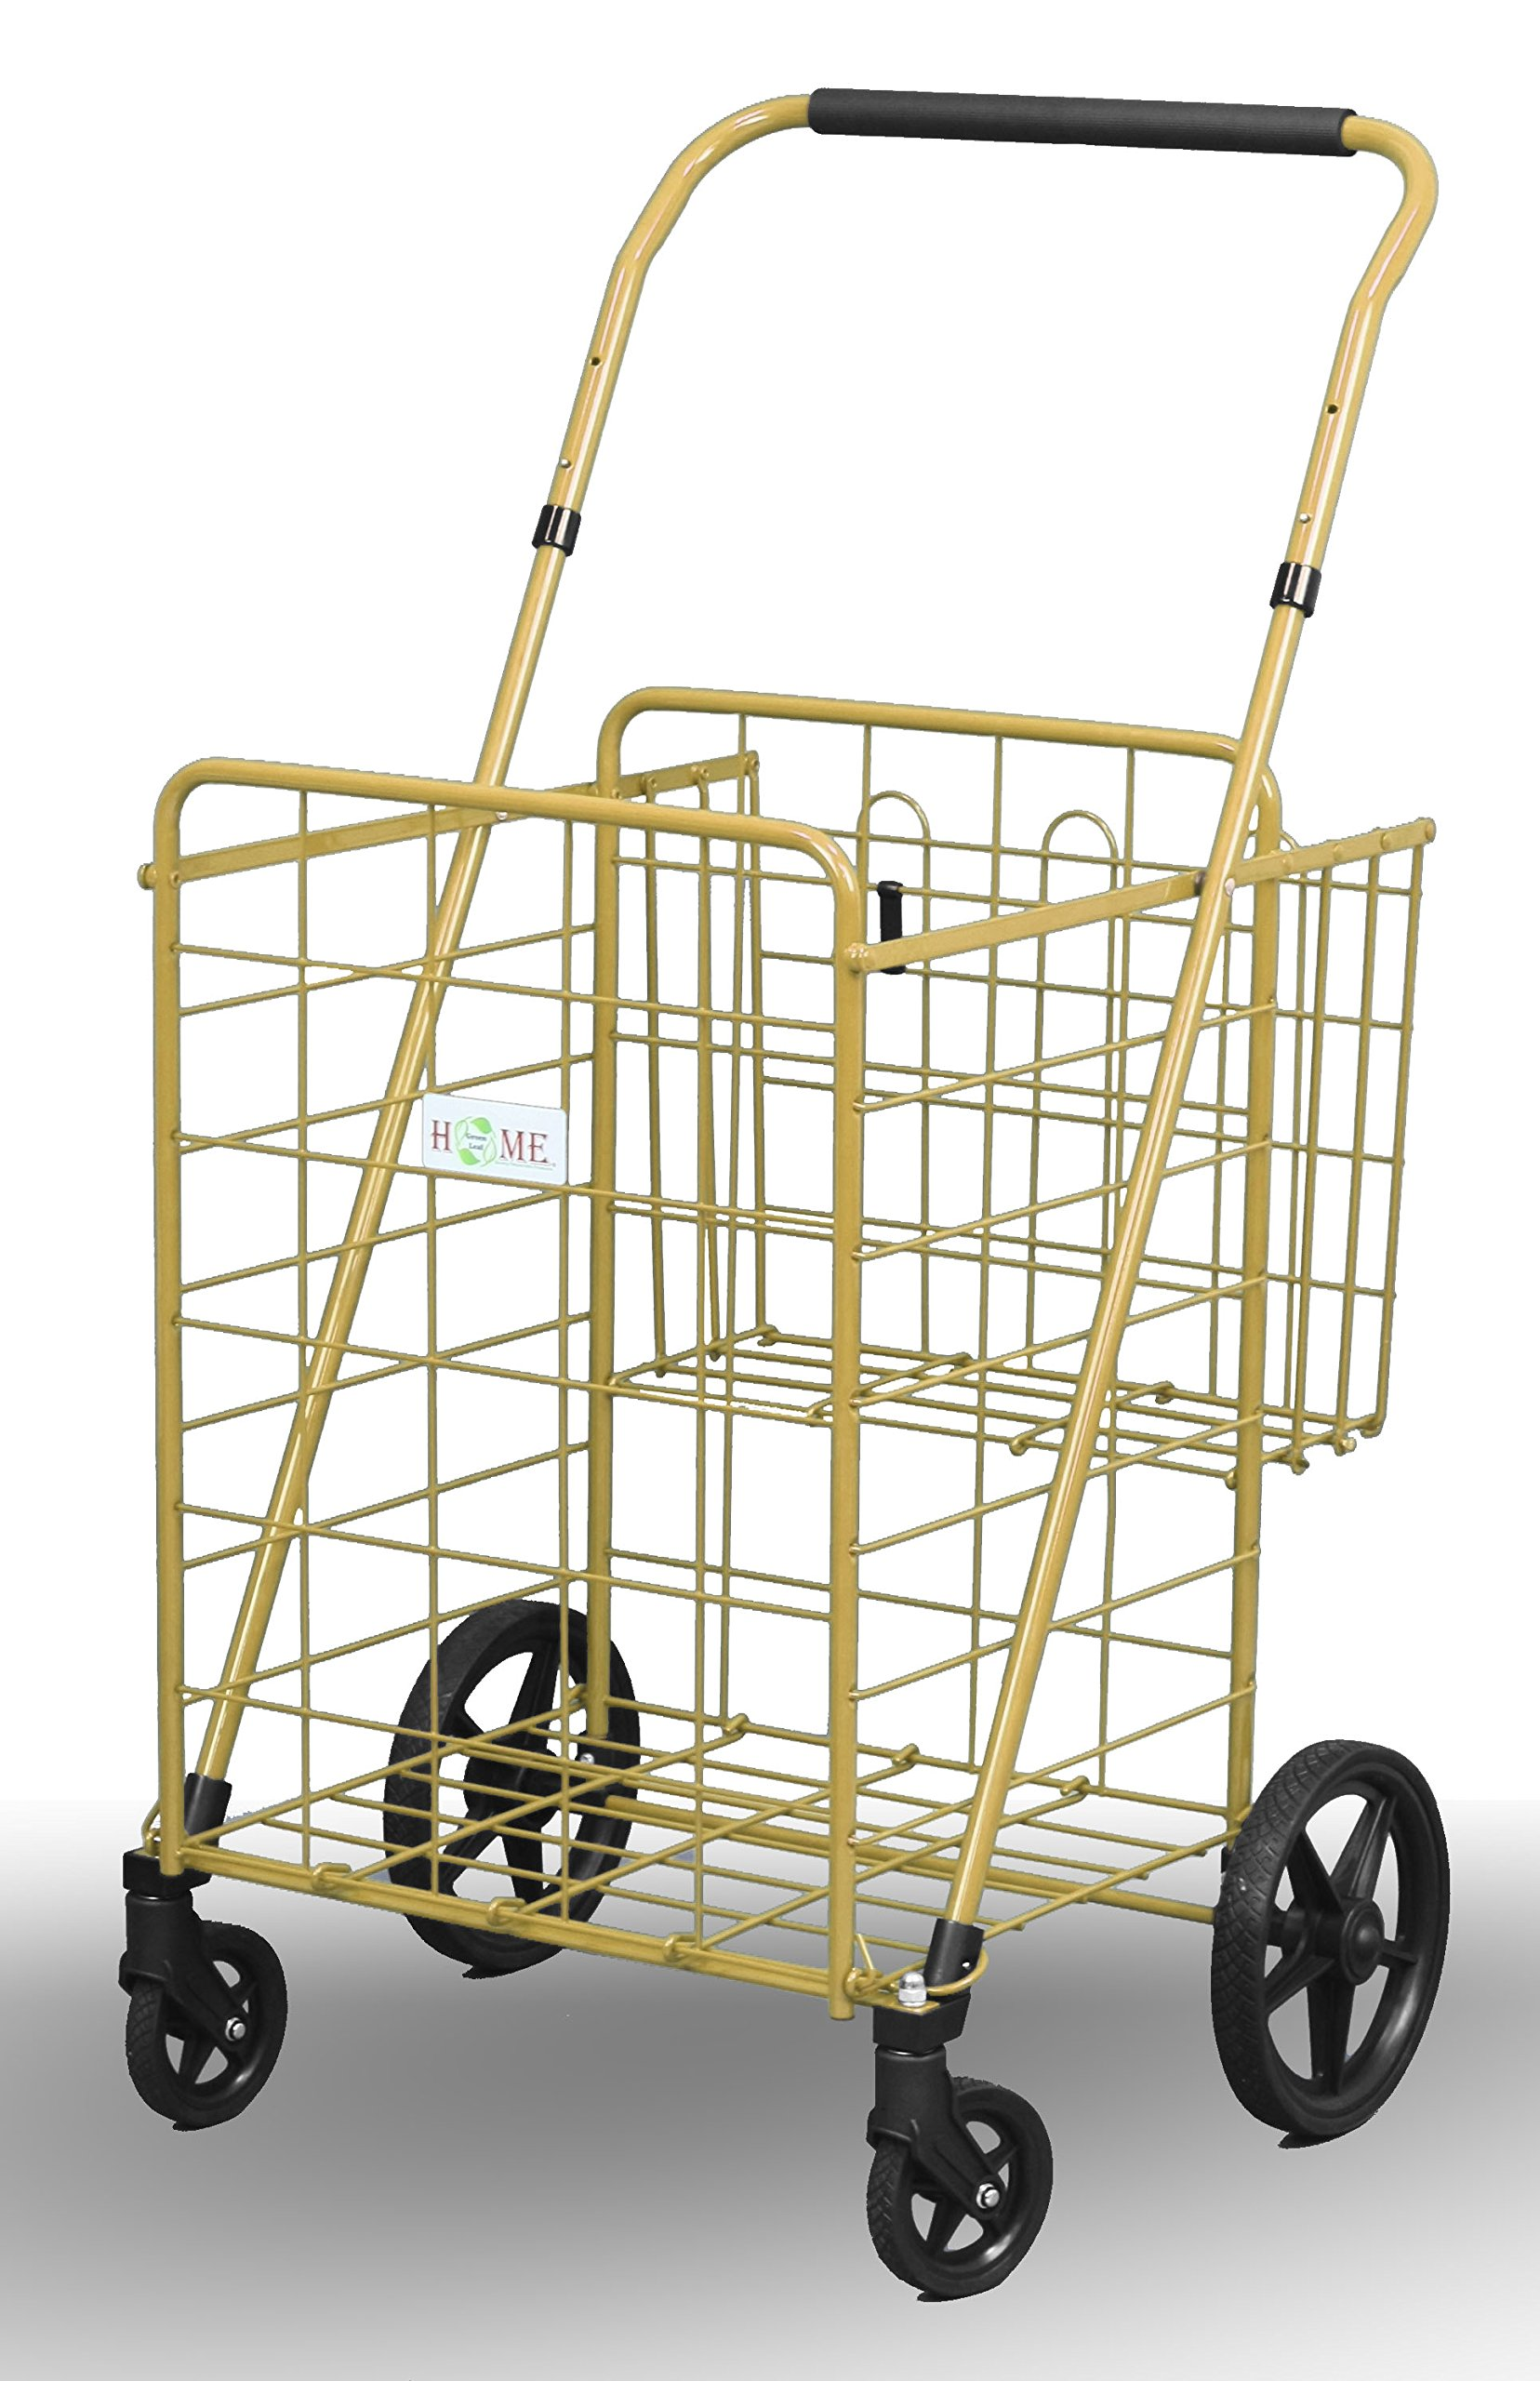 Uniware 1210-GD Shopping Cart with Back Basket, 23.5'' x 25.5'' x 42'', Super Large, Gold